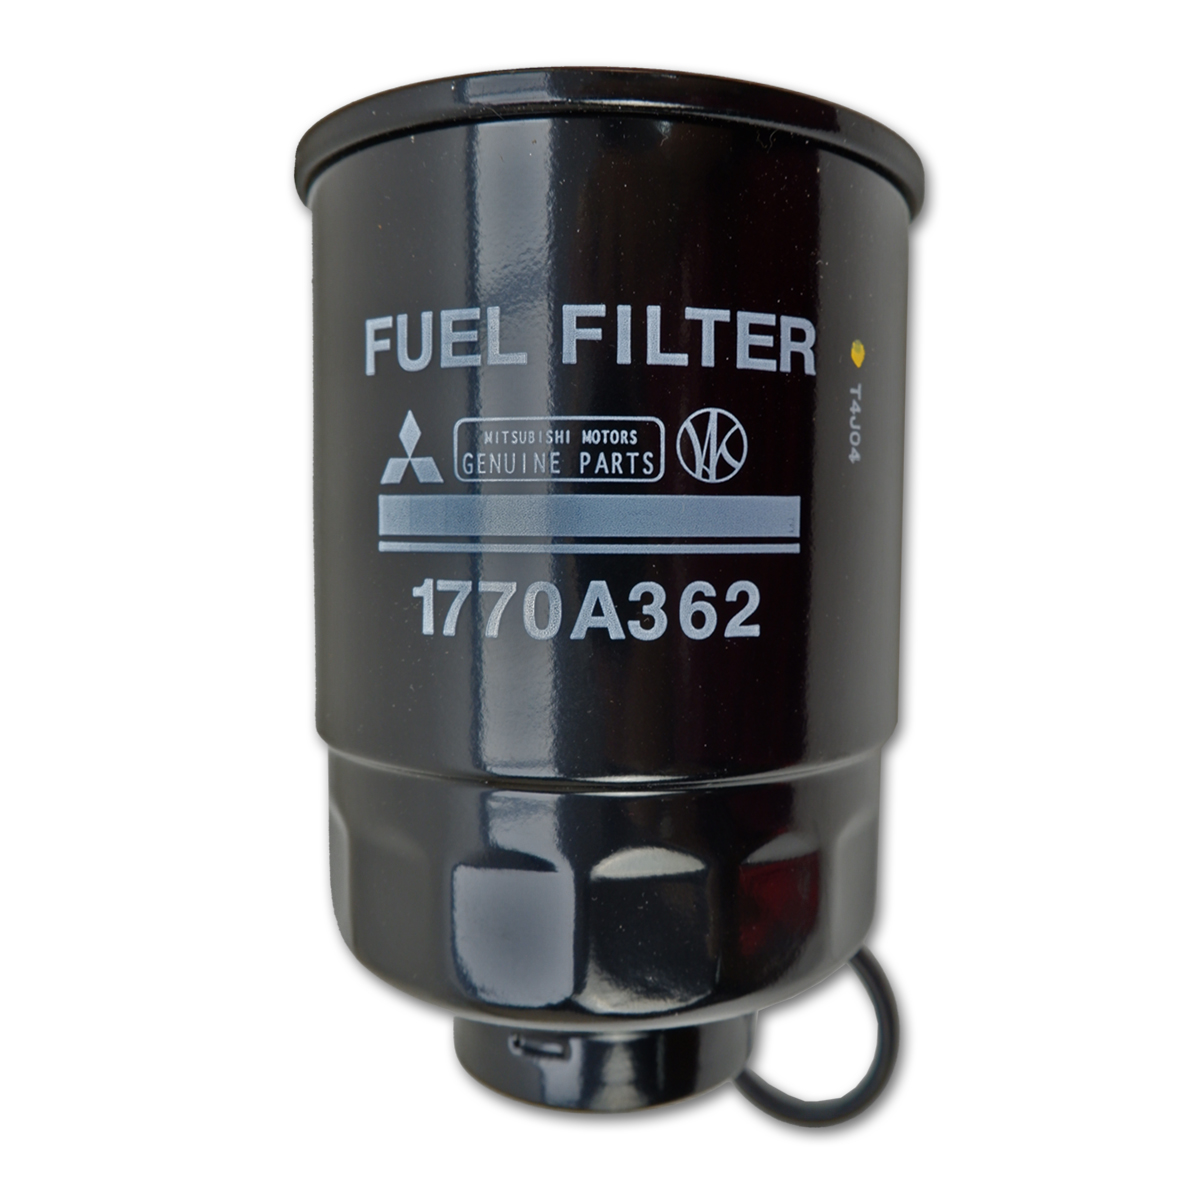 Fuel Filter Black Genuine For Mitsubishi L200 Strada 2.8 Diesel 1996 - 2005  | eBayeBay